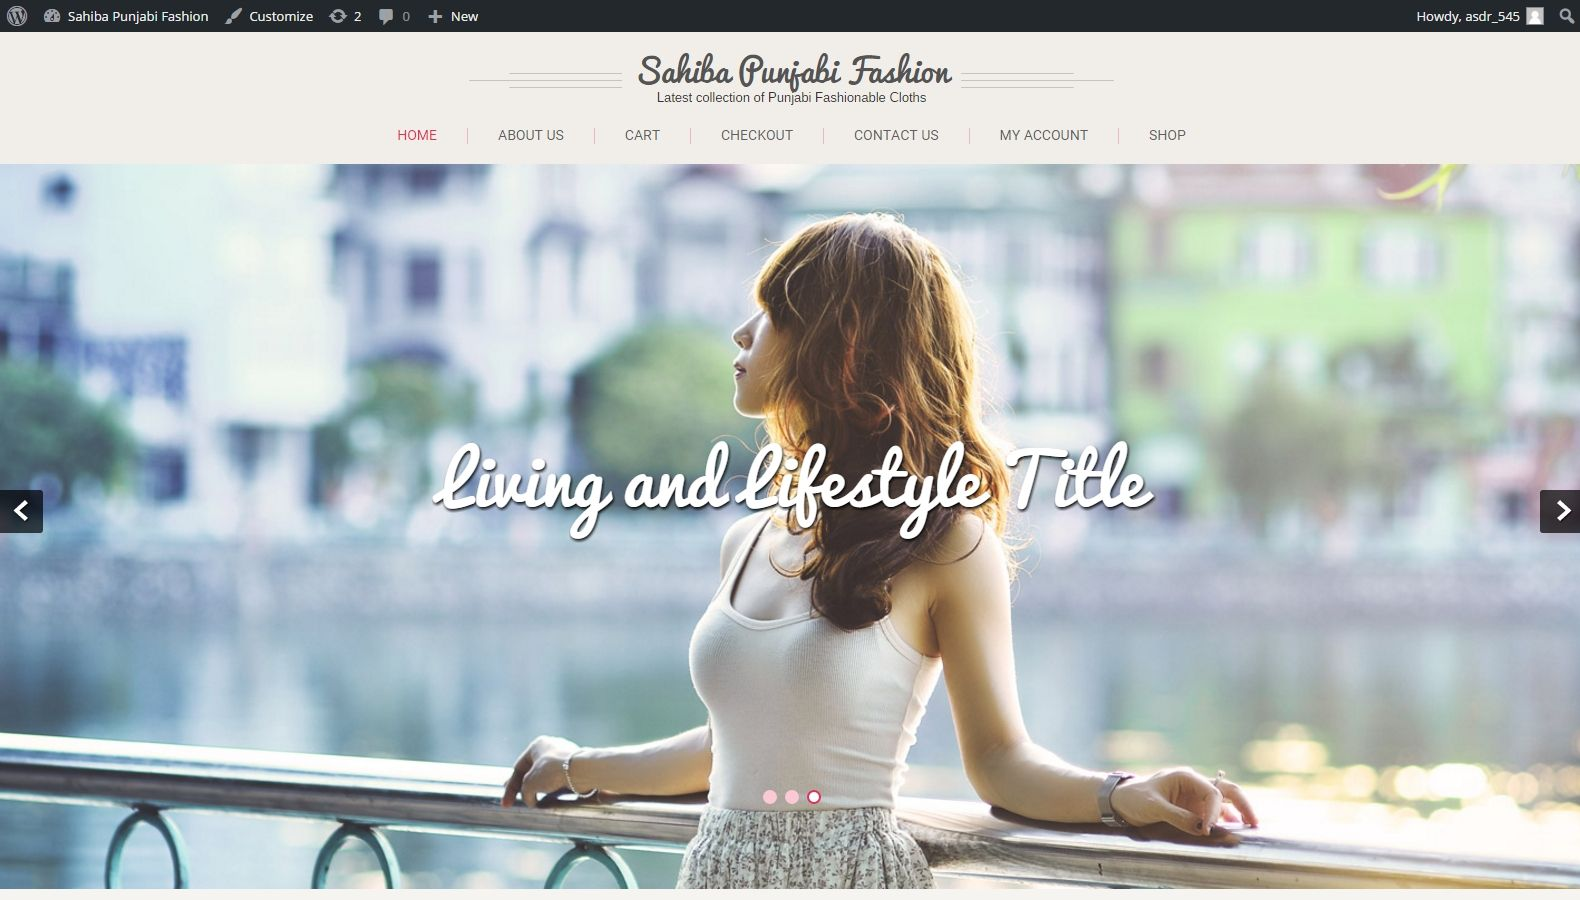 Sahiba Punjabi Fashion - Website Designing By SEOTeam.ca